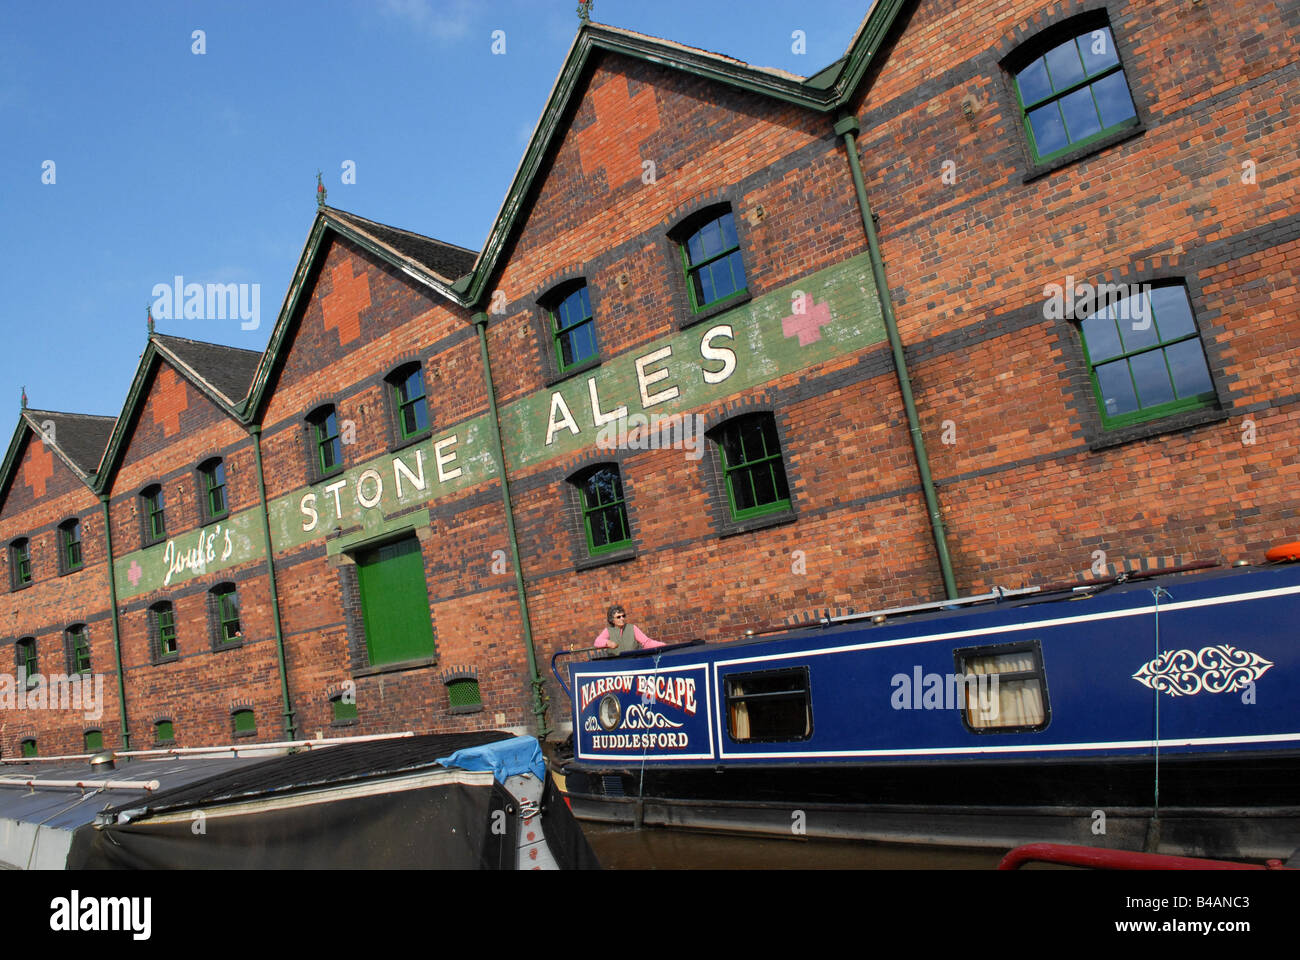 The former Joules Stone Ales brewery on the canalside in Stone Staffordshire - Stock Image